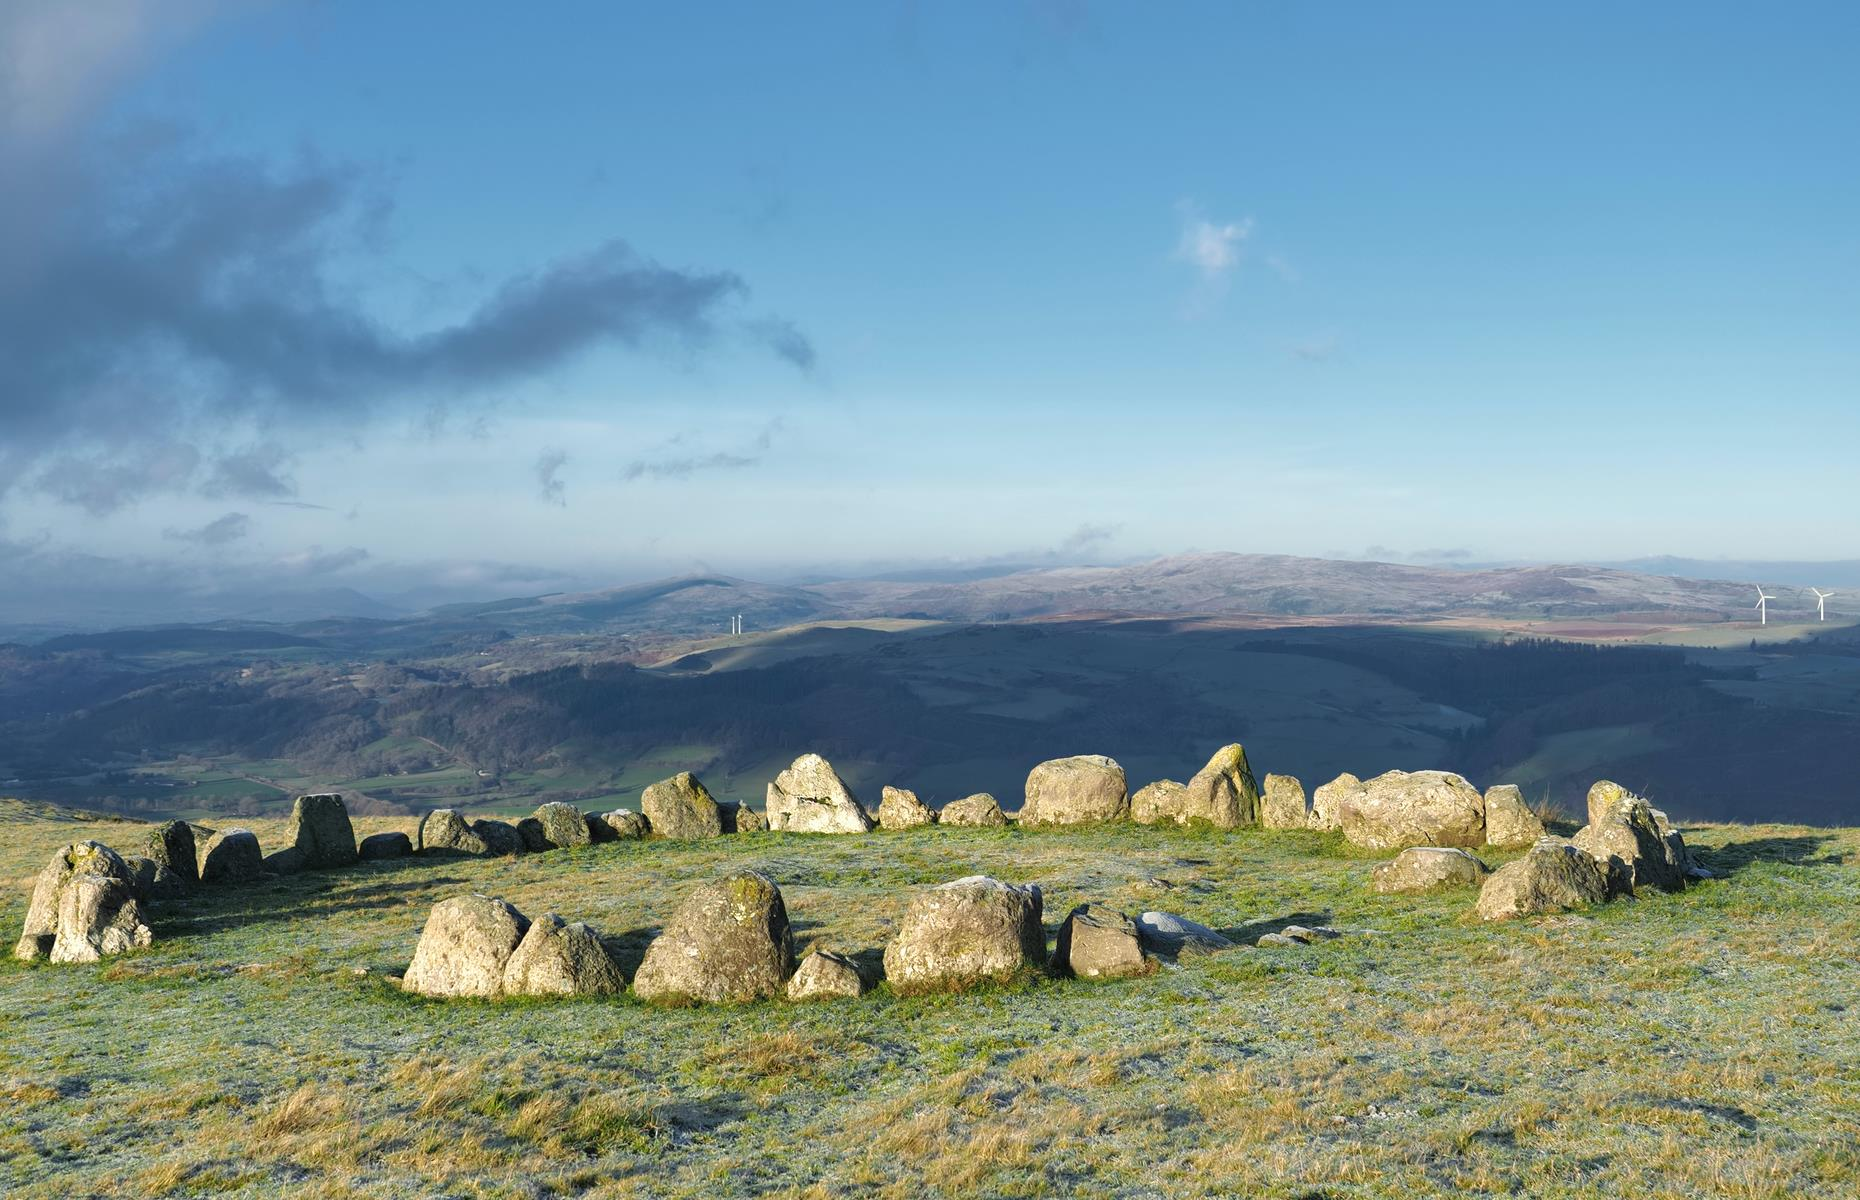 Slide 12 of 31: It might be small, but this almost perfect circle of ancient stones huddled high in the hills above the Dee Valley is something special. Its remote setting only adds to the palpable sense of history here. The Ring of Tyfos stone circle and Caer Drewyn Hillfort are close by too.